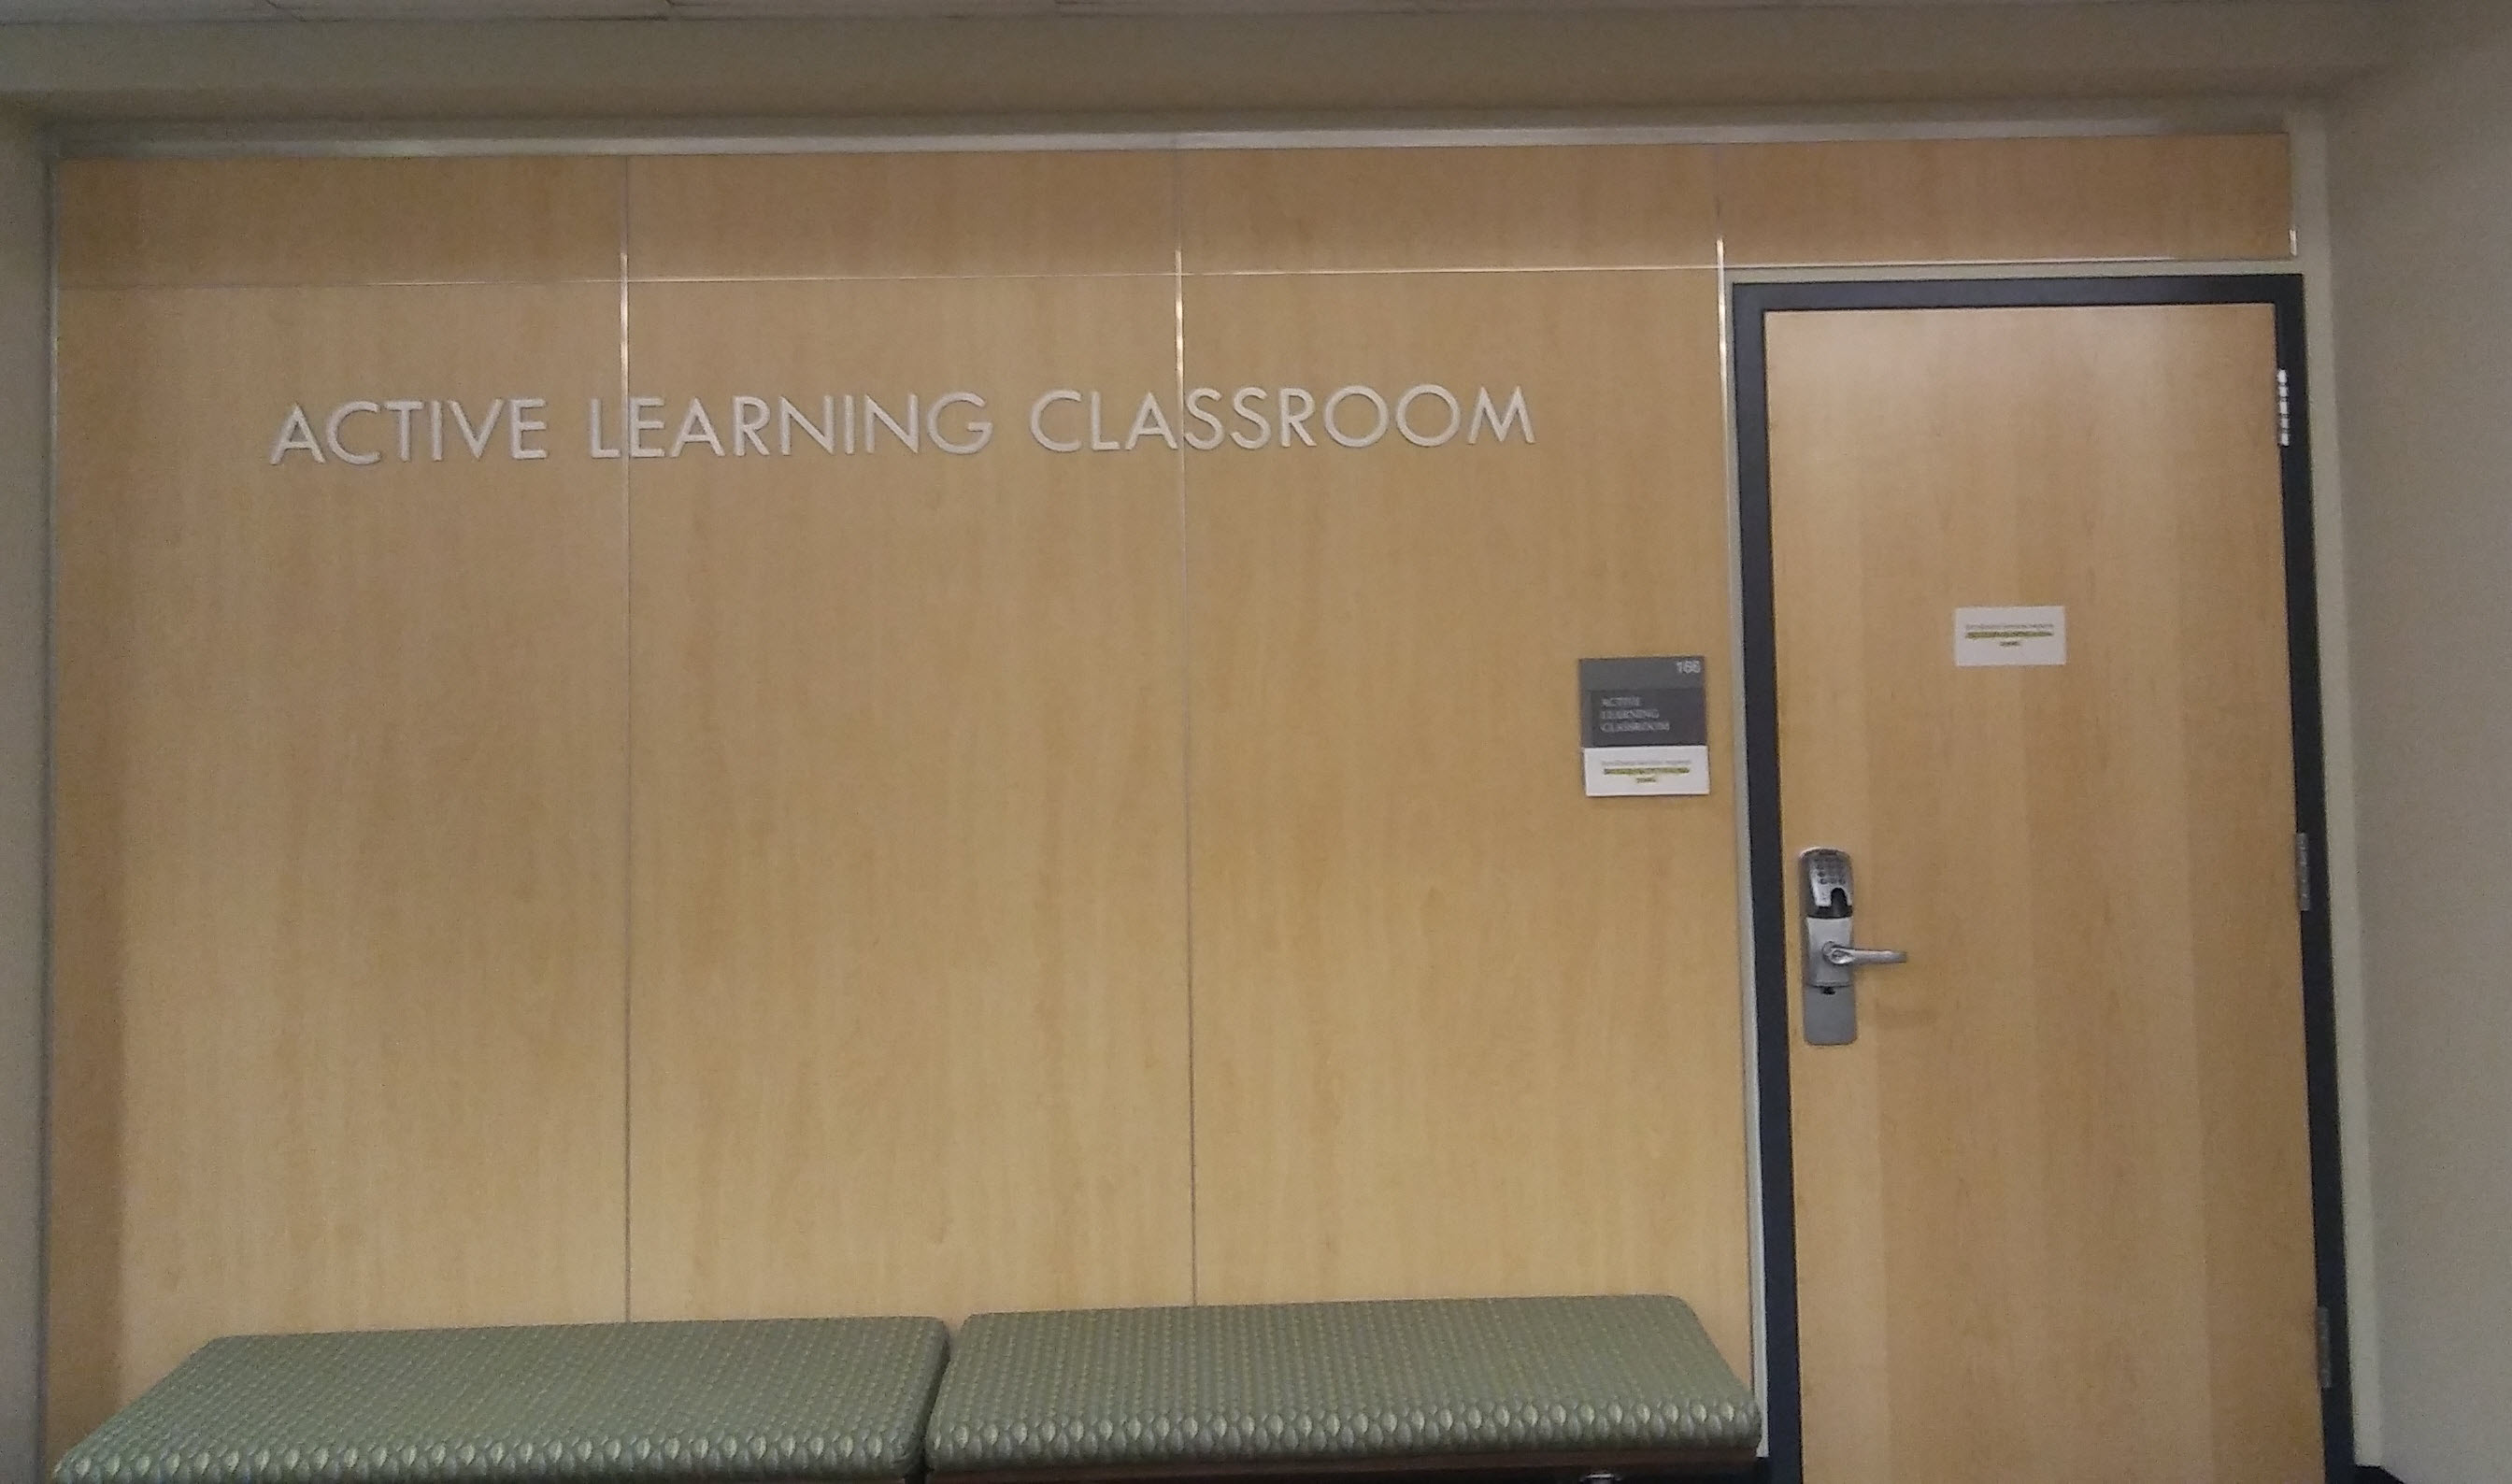 photo of the entrance to the Active Learning Classroom, Room 166